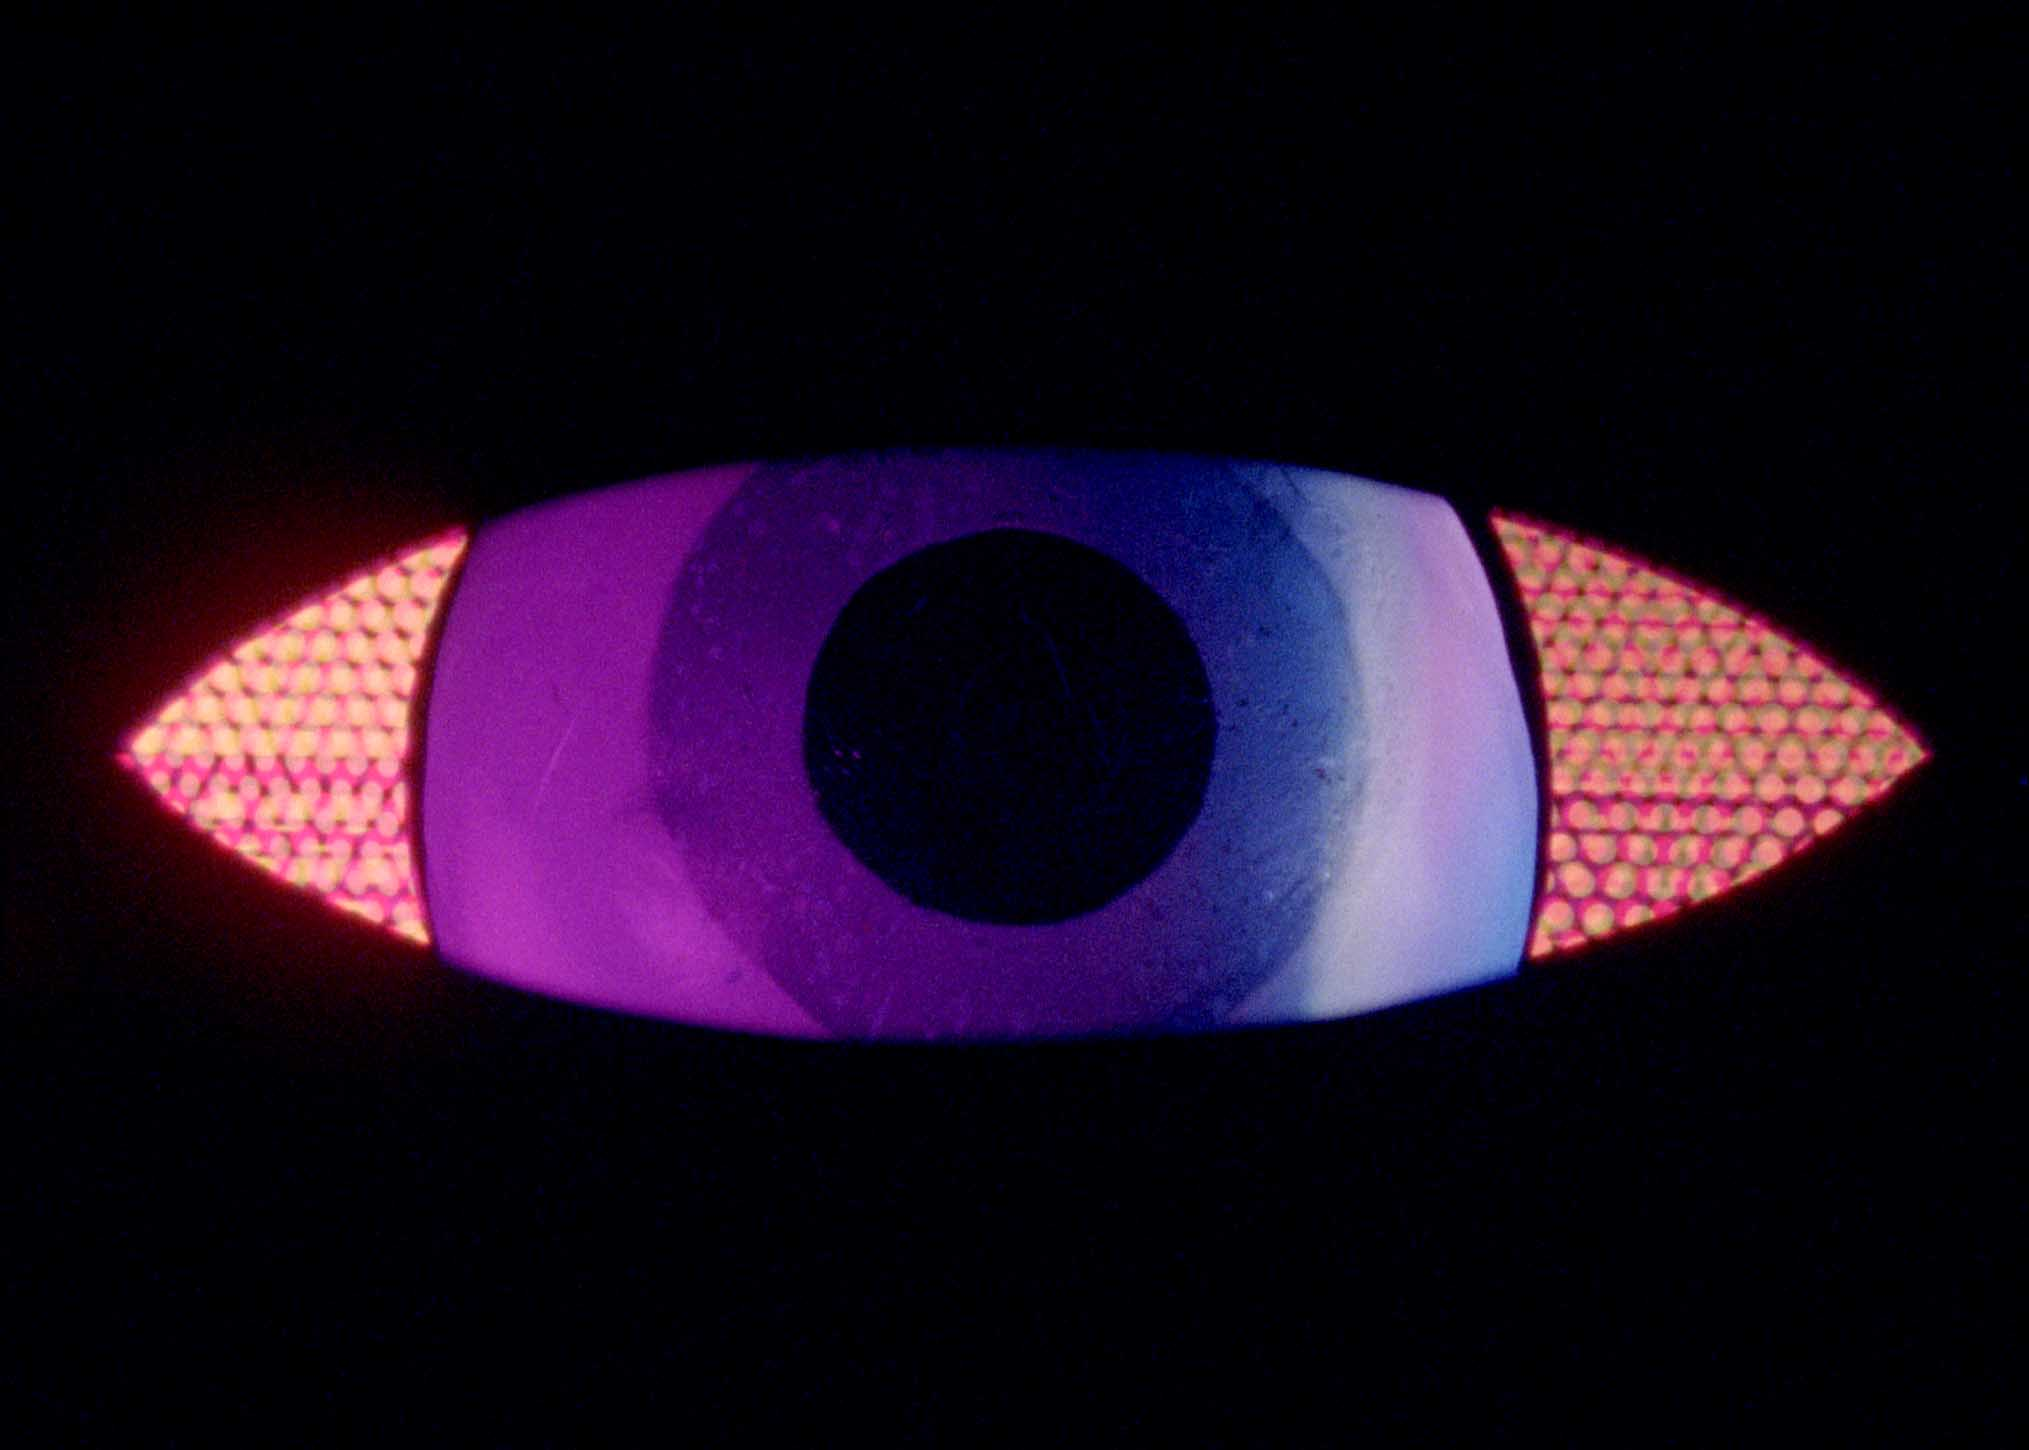 Sam Austen, still from Hologram Burnt On To The Retina, 2018.